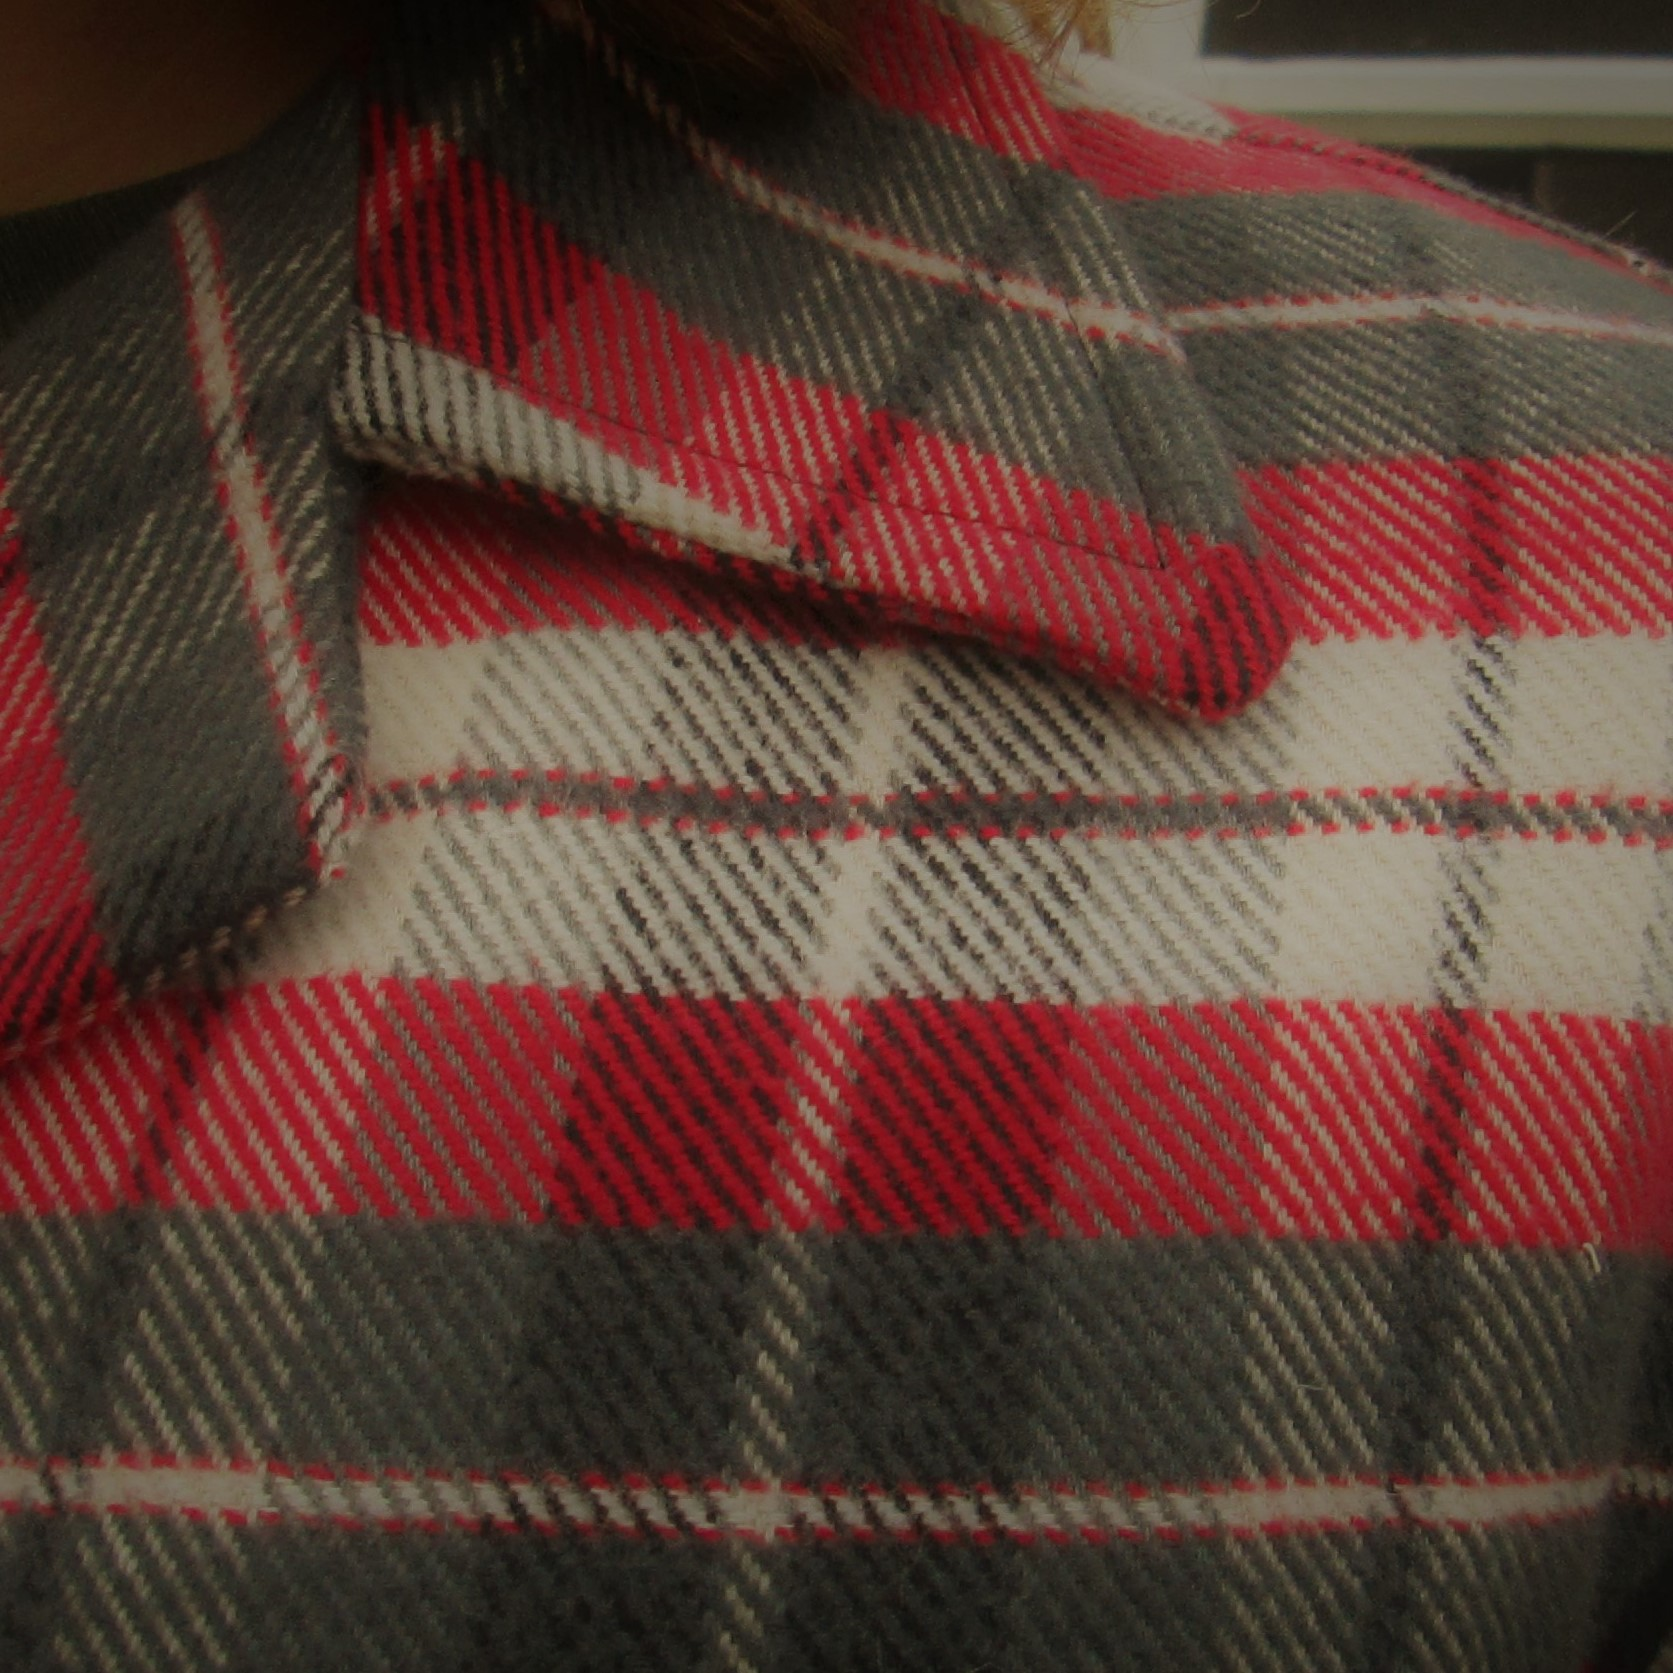 The Rad Plaid Flannel Channel